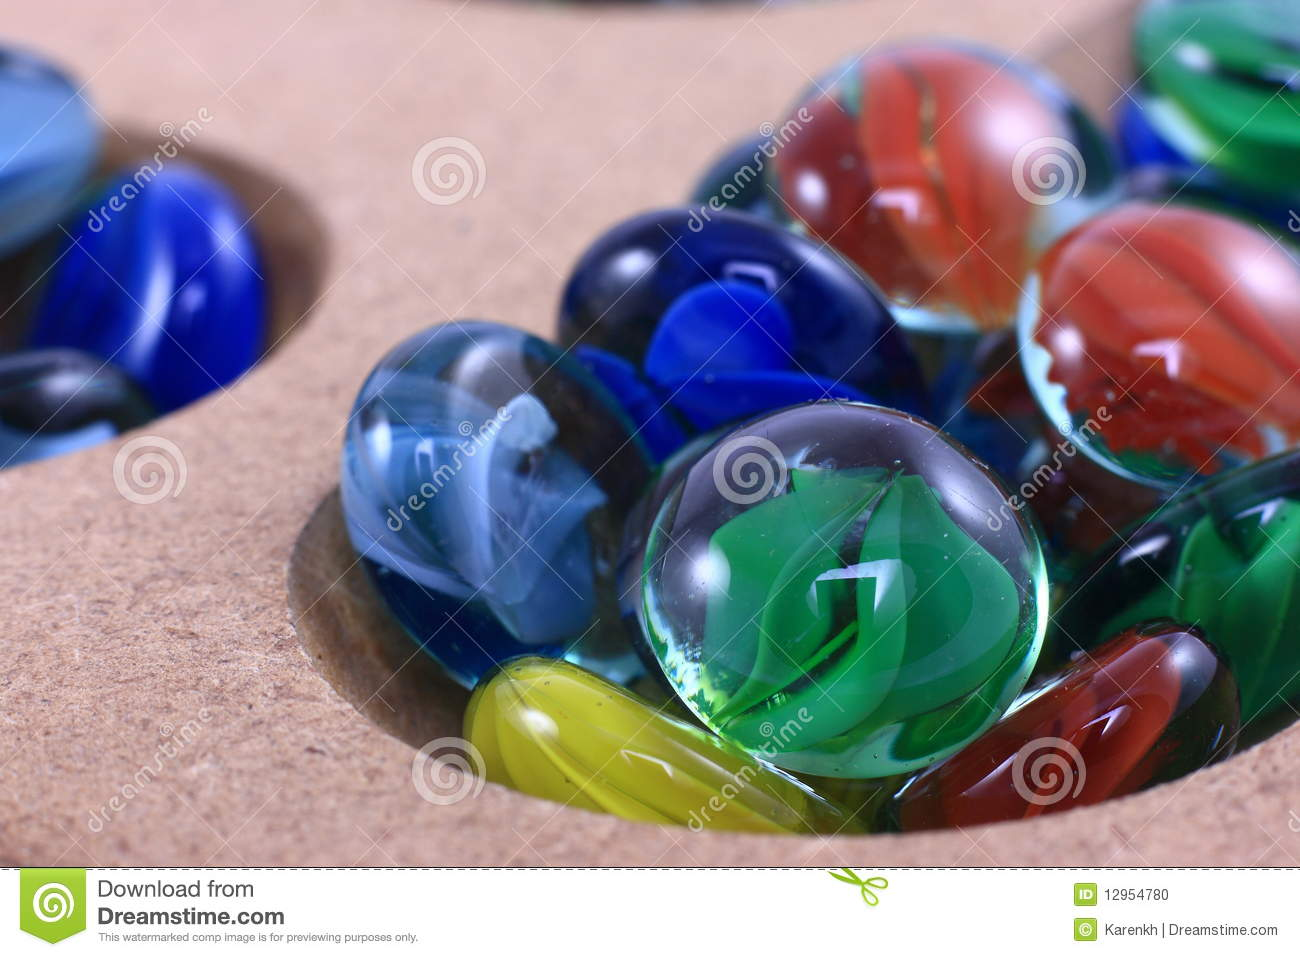 Glass Marbles Game : Colorful glass marble game stock photo image of objects